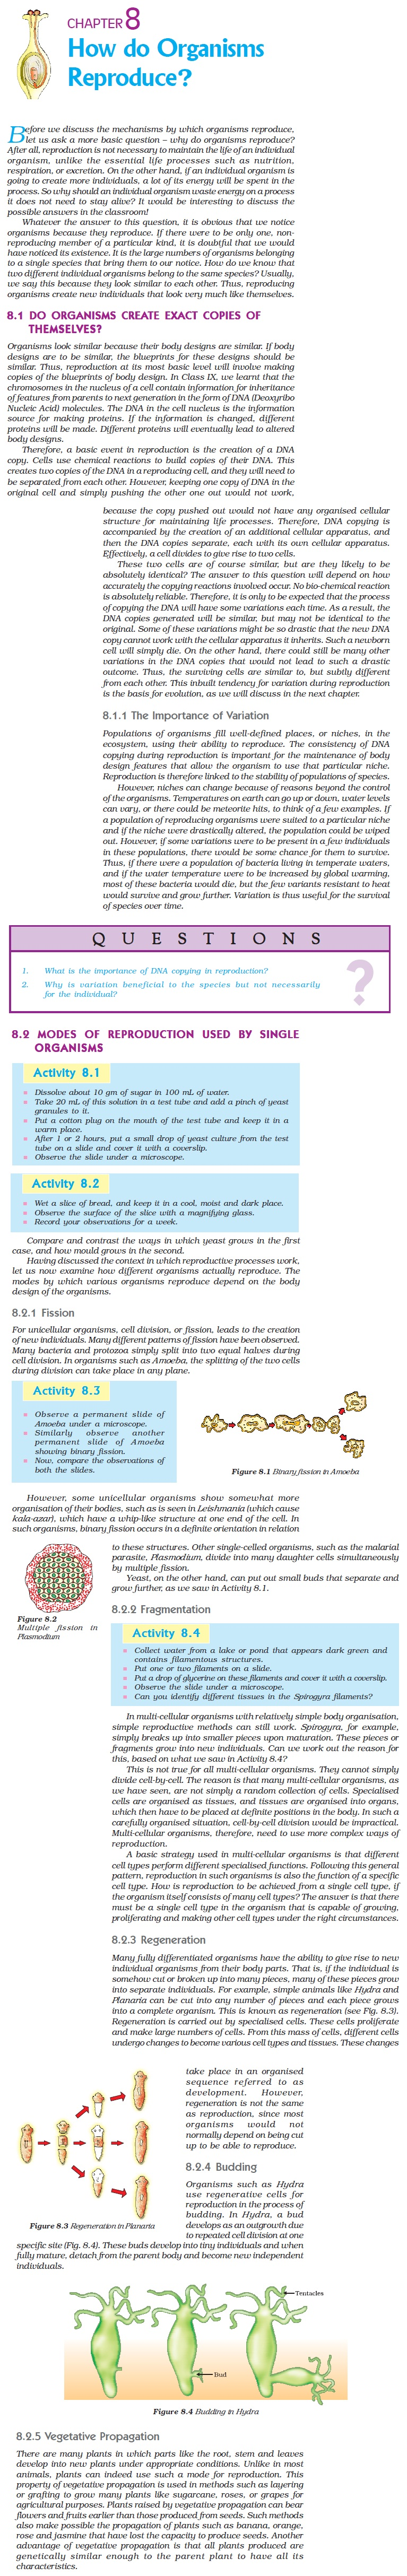 NCERT Class X Science Chapter 8 - How do Organisms Reproduce?